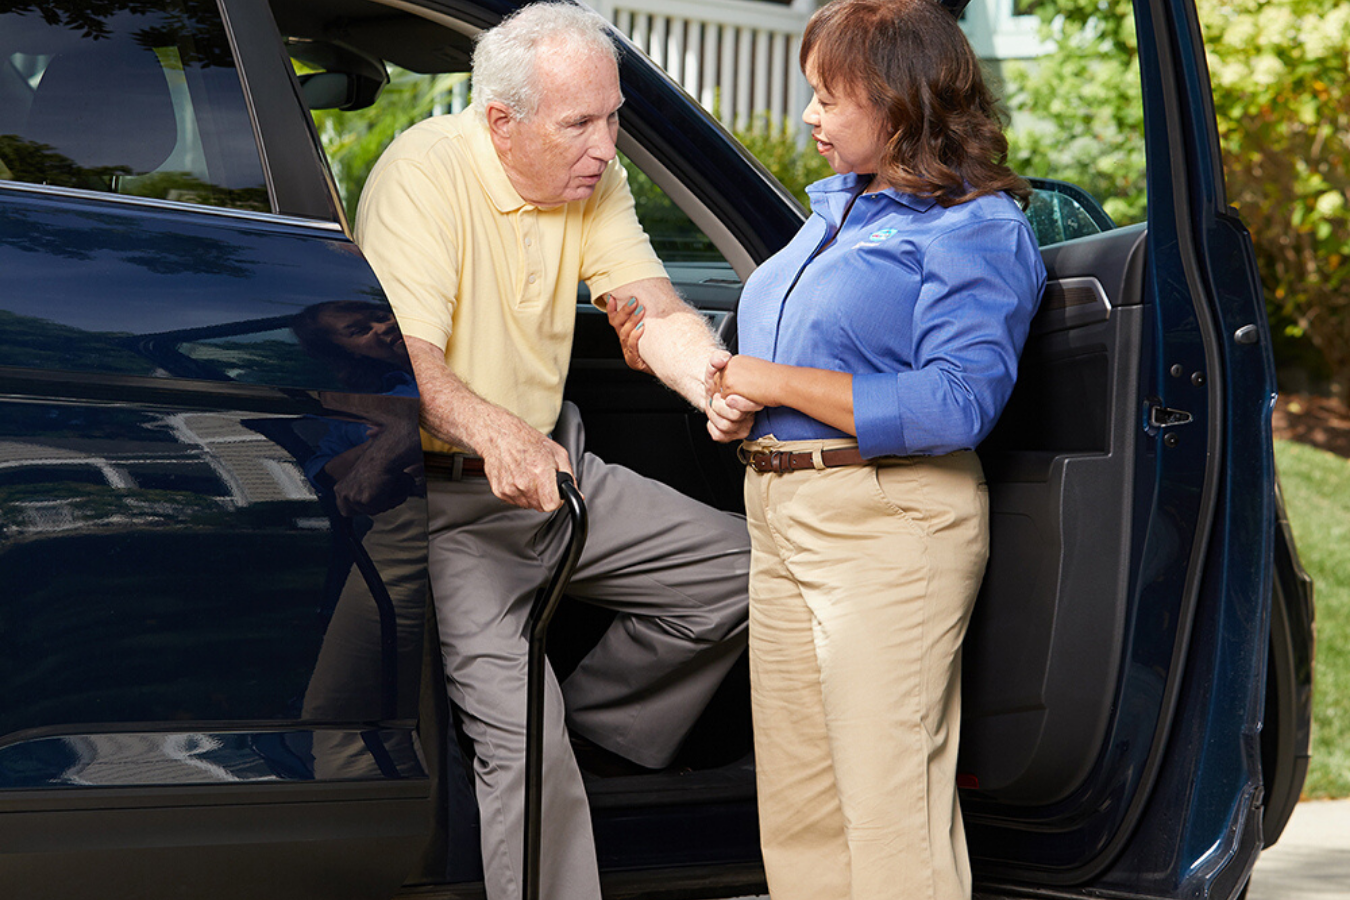 Comfort Keepers Caregiver assisting senior with cane exit van